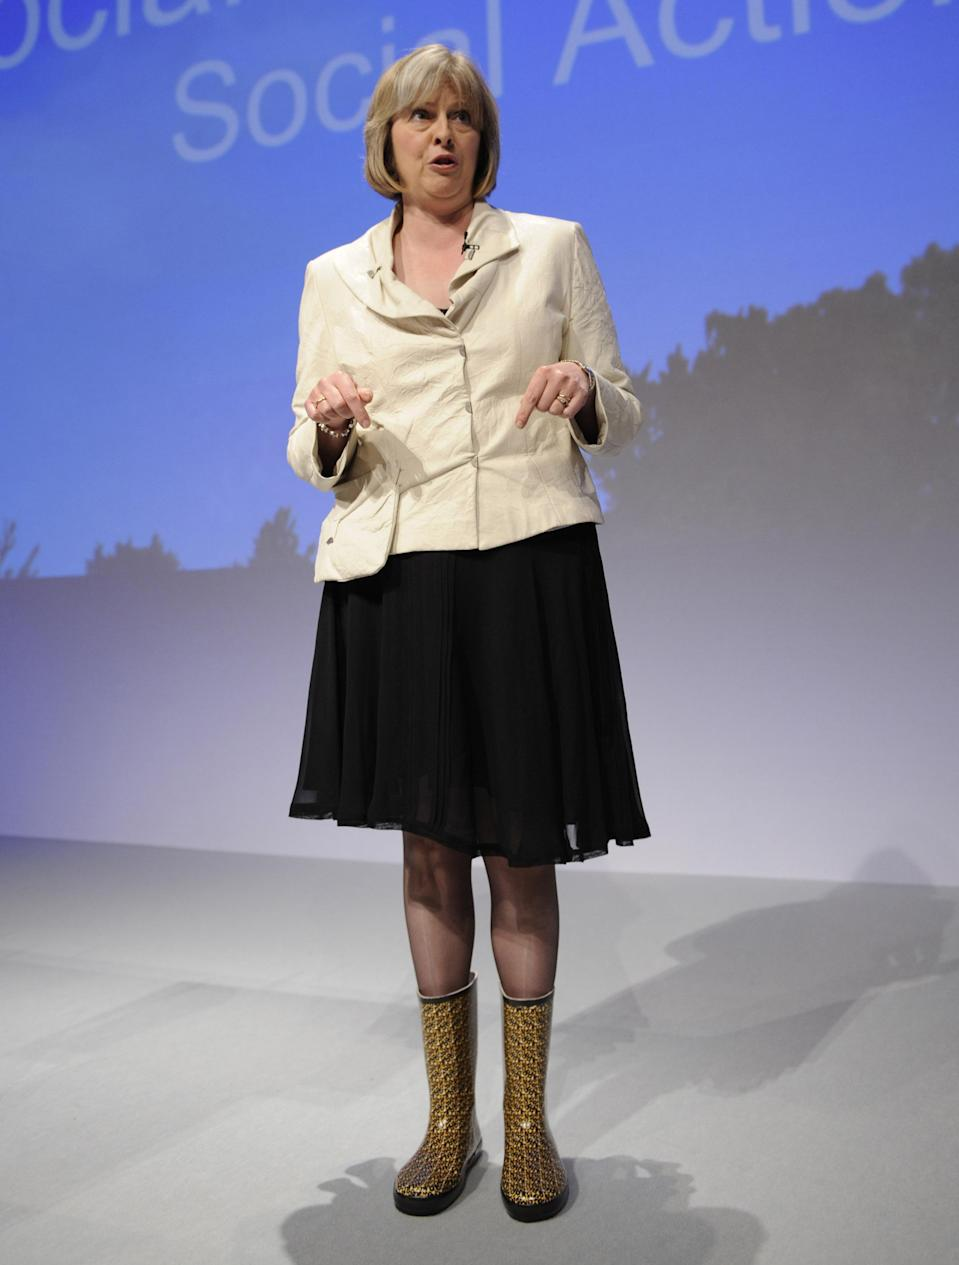 Theresa May, then Shadow Leader of House of Commons, addressed the Conservative Party conference in Blackpool wearing wellington boots, and was clearly very proud of them. Photo dated 20/09/2007 (PA)